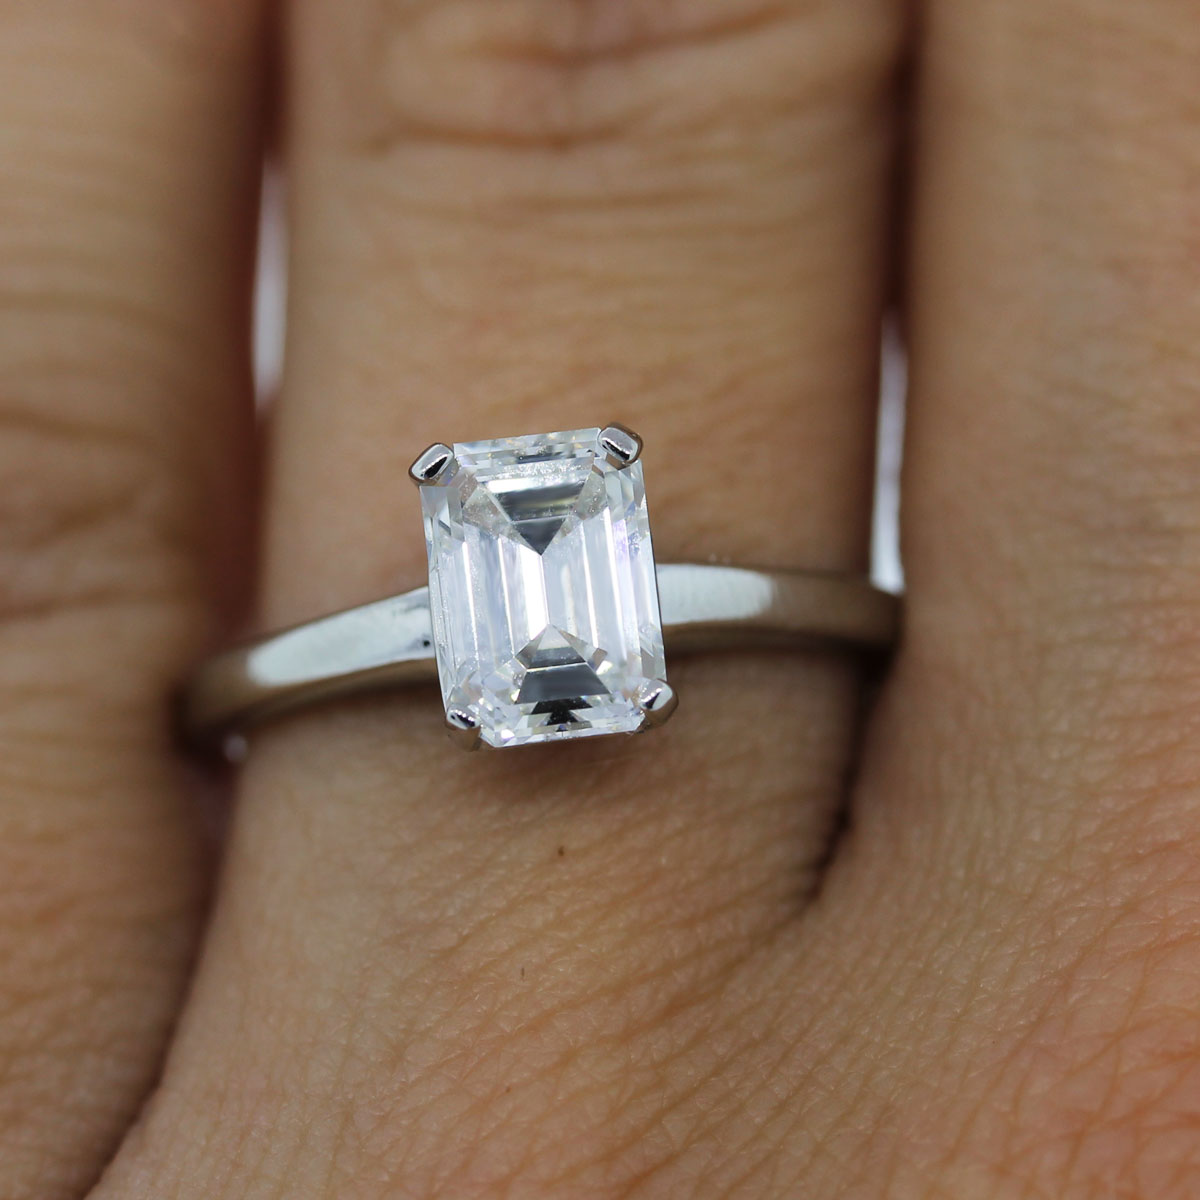 platinum gia certified emerald cut solitaire. Black Bedroom Furniture Sets. Home Design Ideas